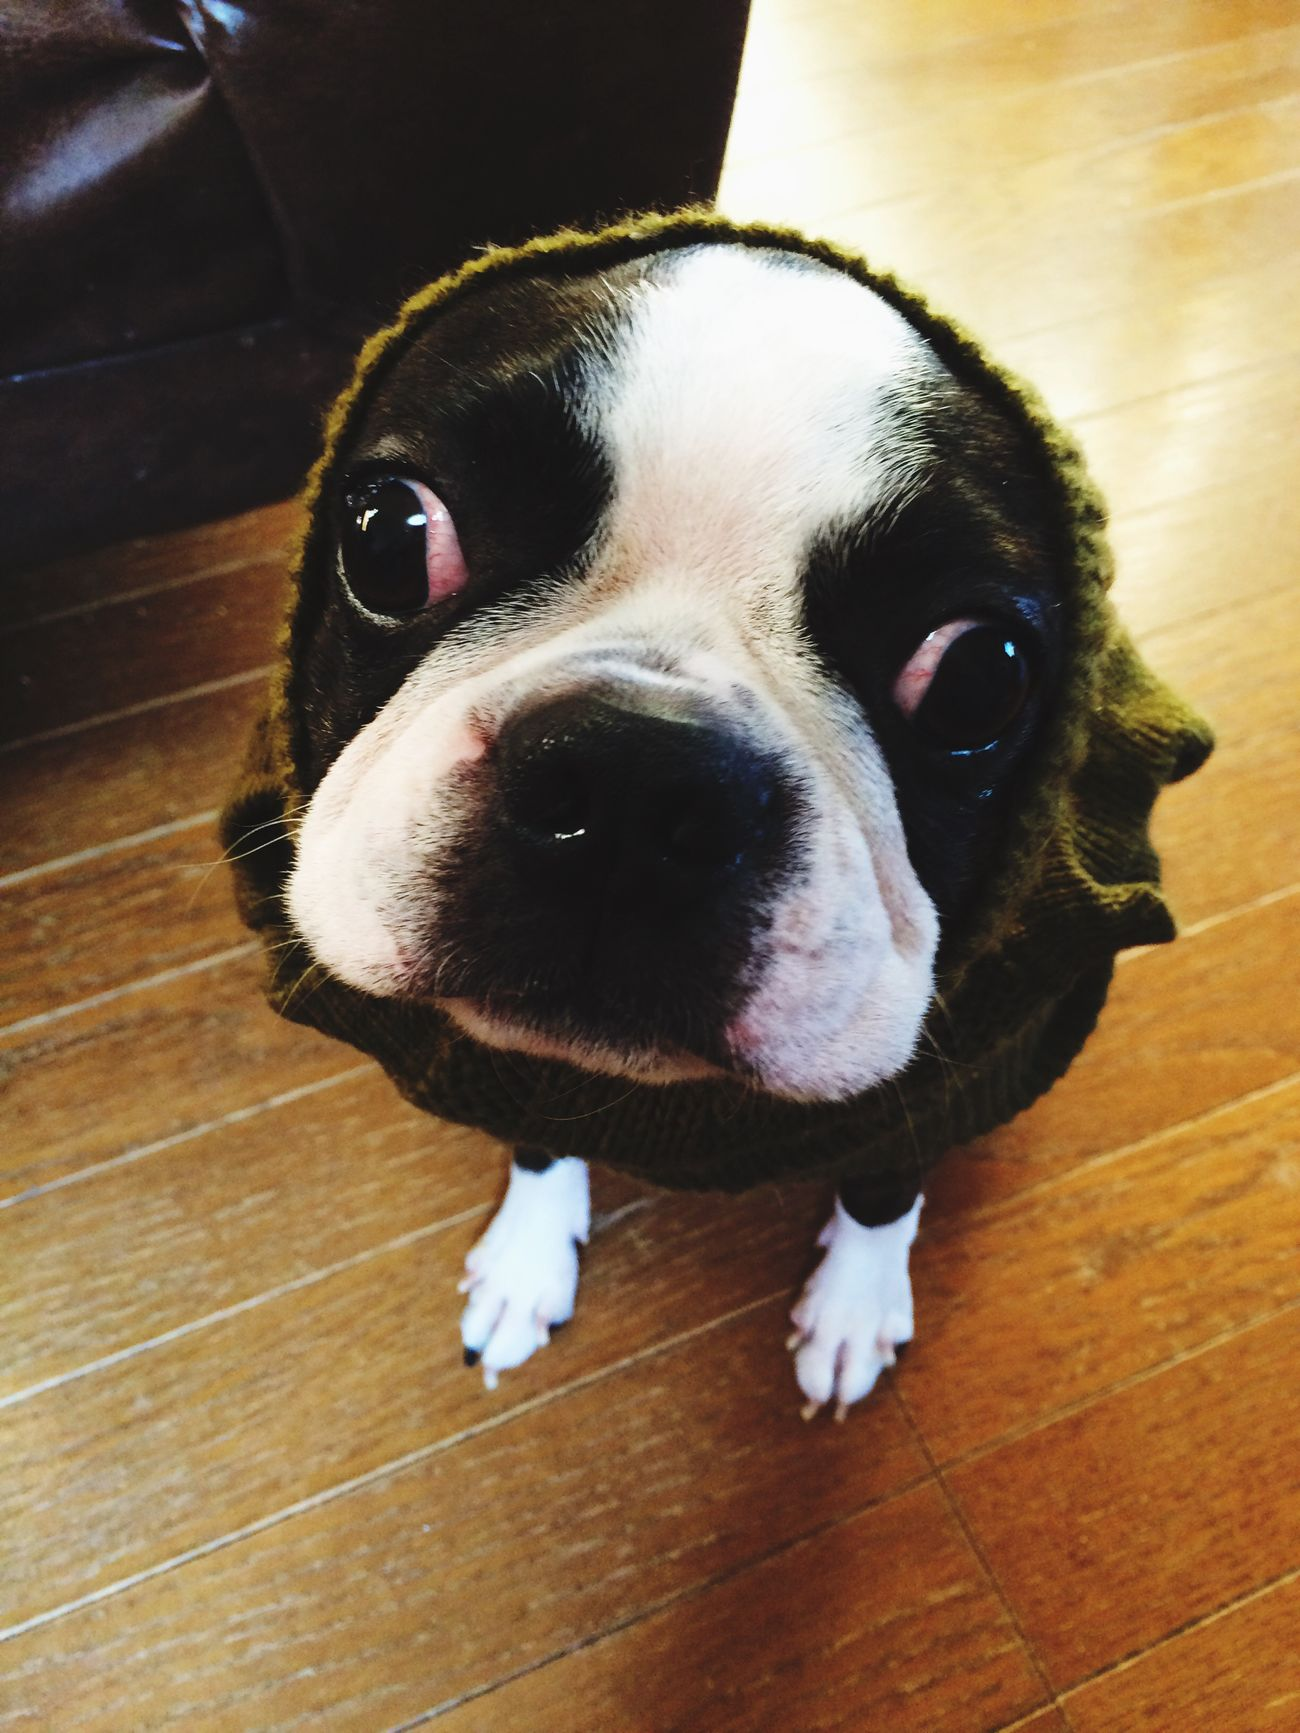 ナナホシ Dog Ilovemydog Buhi Bostonterrier I Love My Dog ボストンテリ Boston Terrier